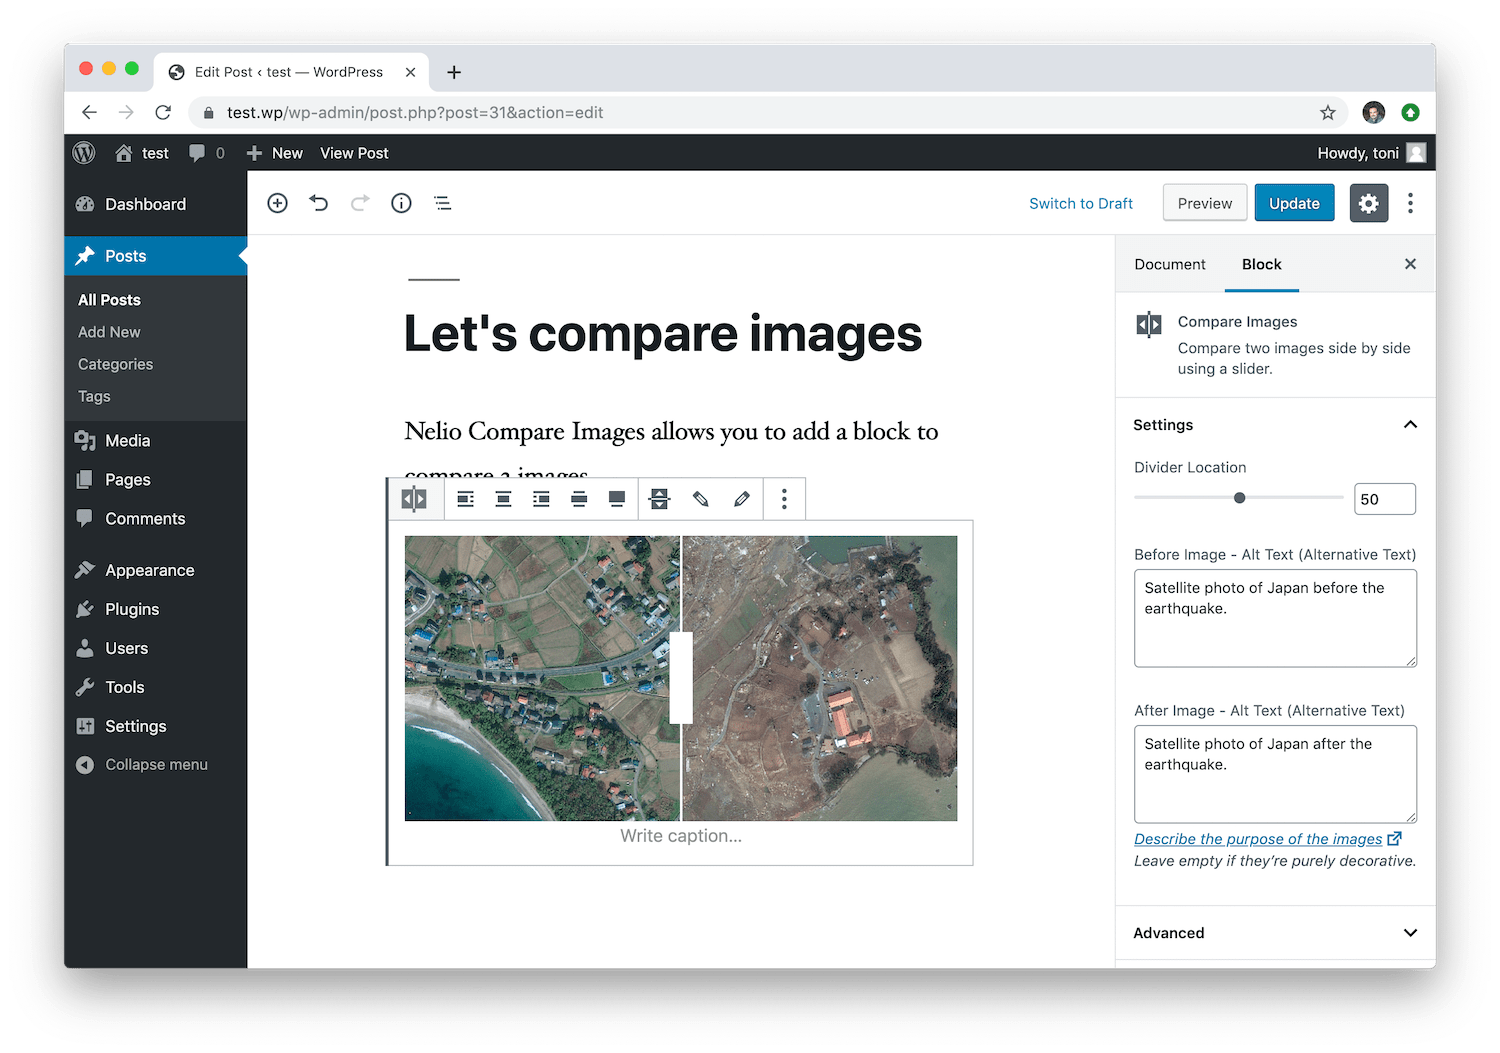 The Nelio Compare Images block allows you to indicate the alternative text of each of the two images to compare.